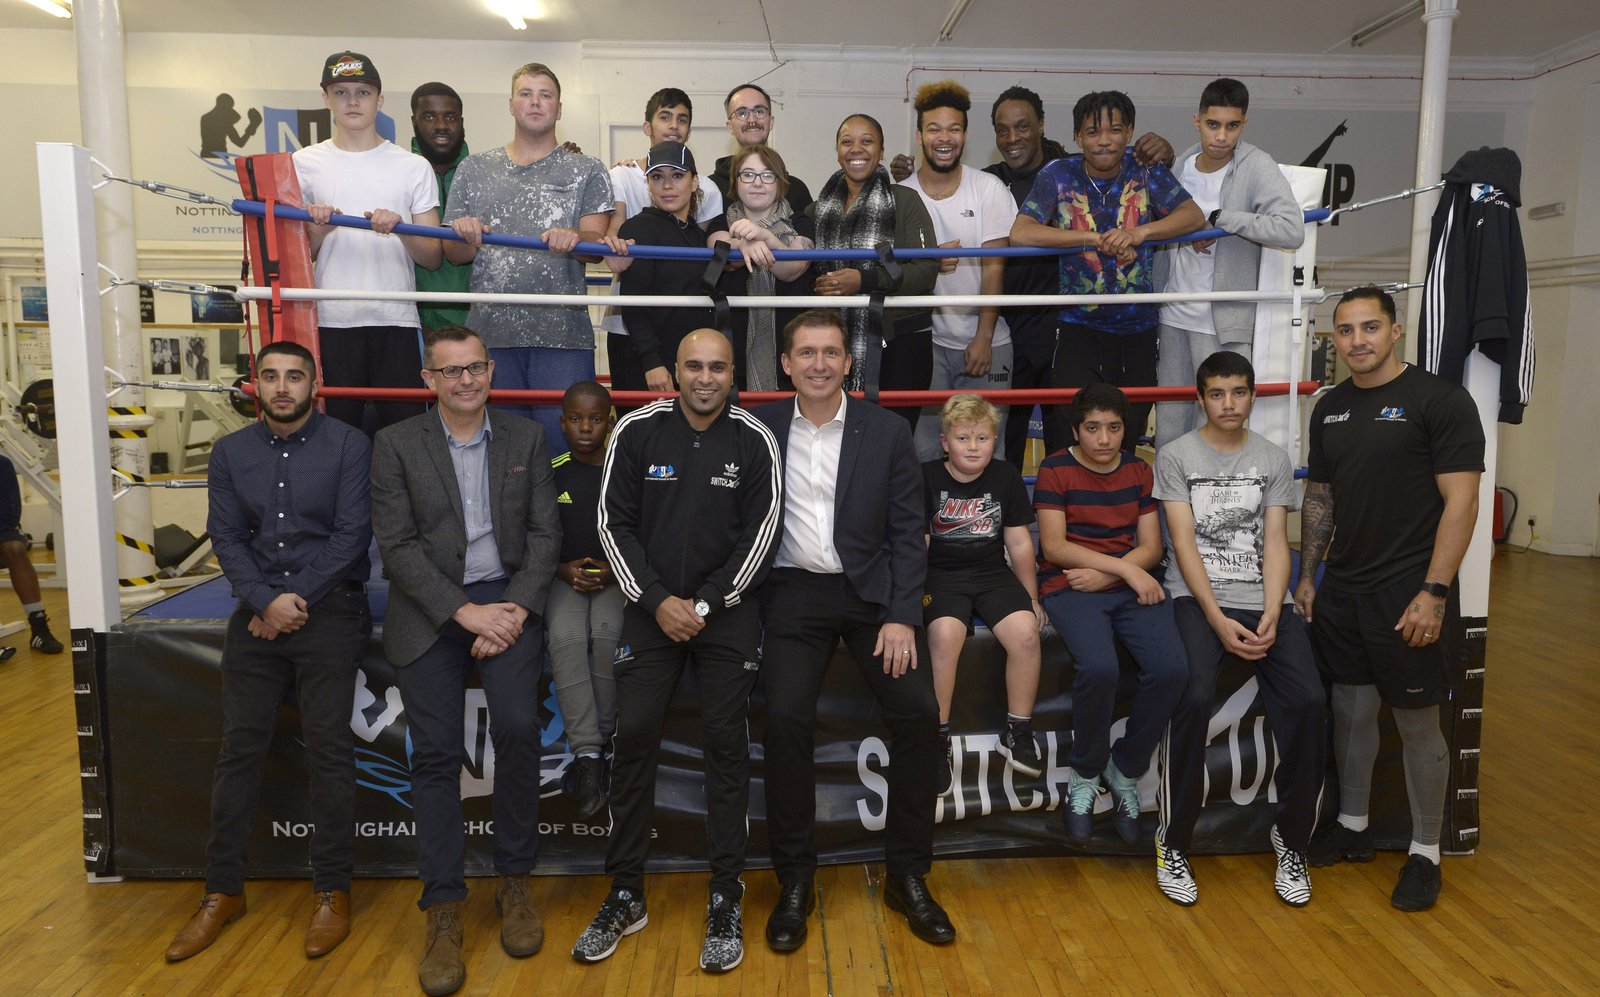 Morgan Sindall Construction team and students at the Nottingham School of Boxing, pictured in the Boxing ring